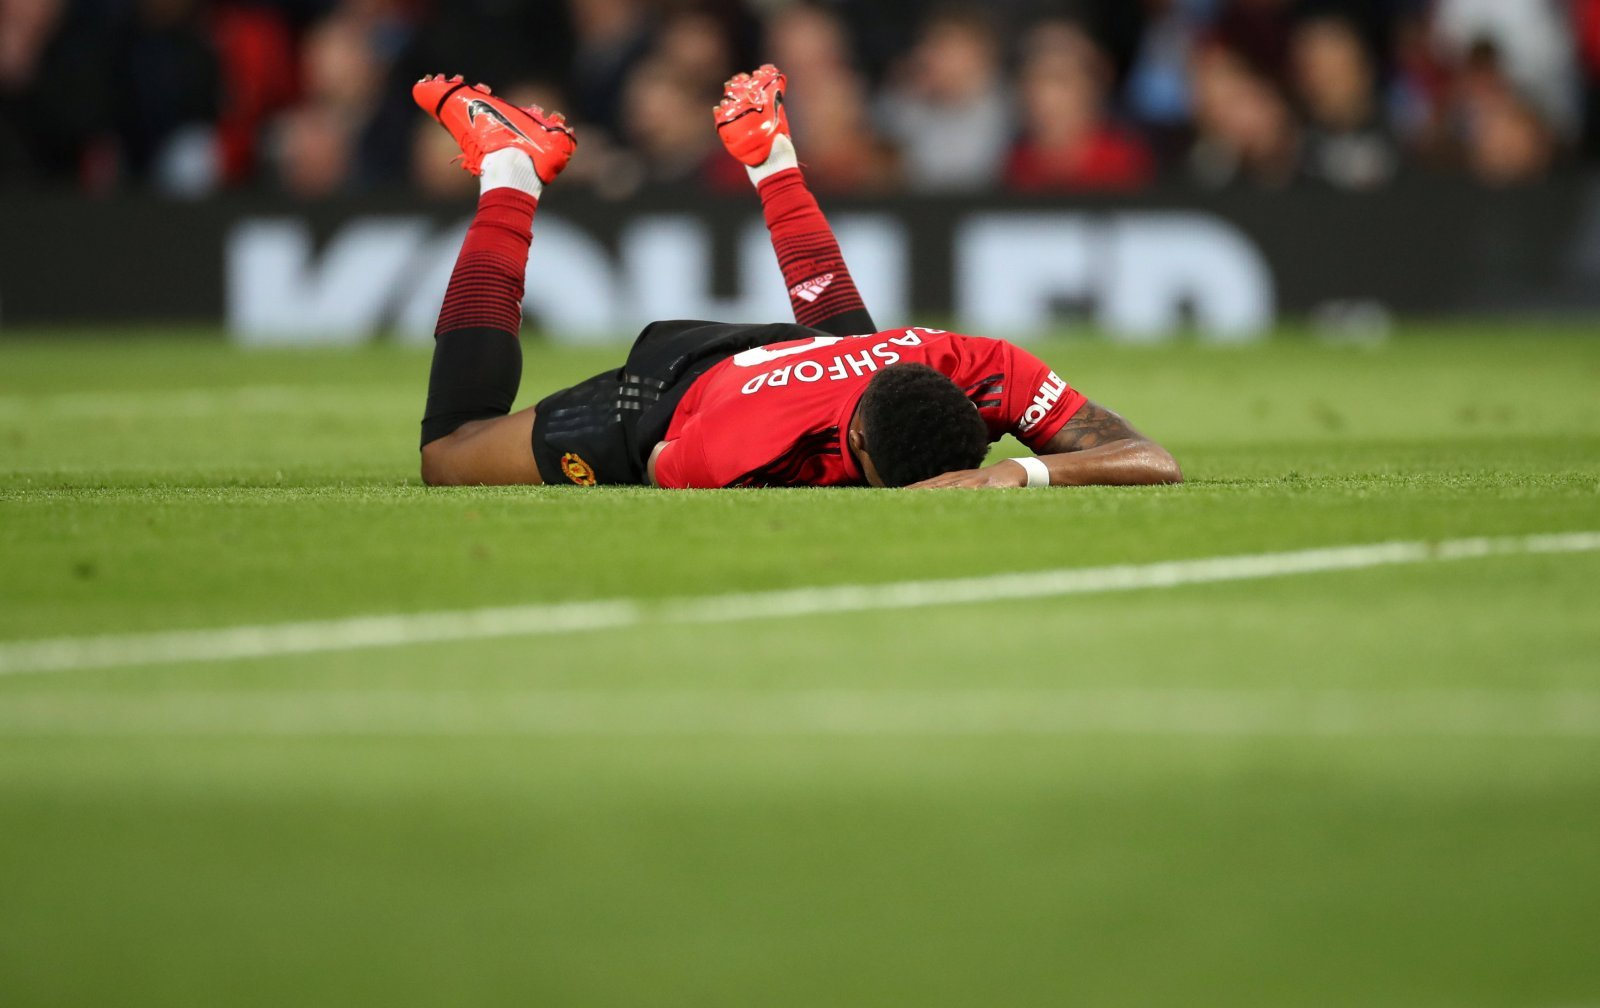 Manchester United: Marcus Rashford, Harry Maguire and Victor Lindelof all injury doubts ahead of Bournemouth clash